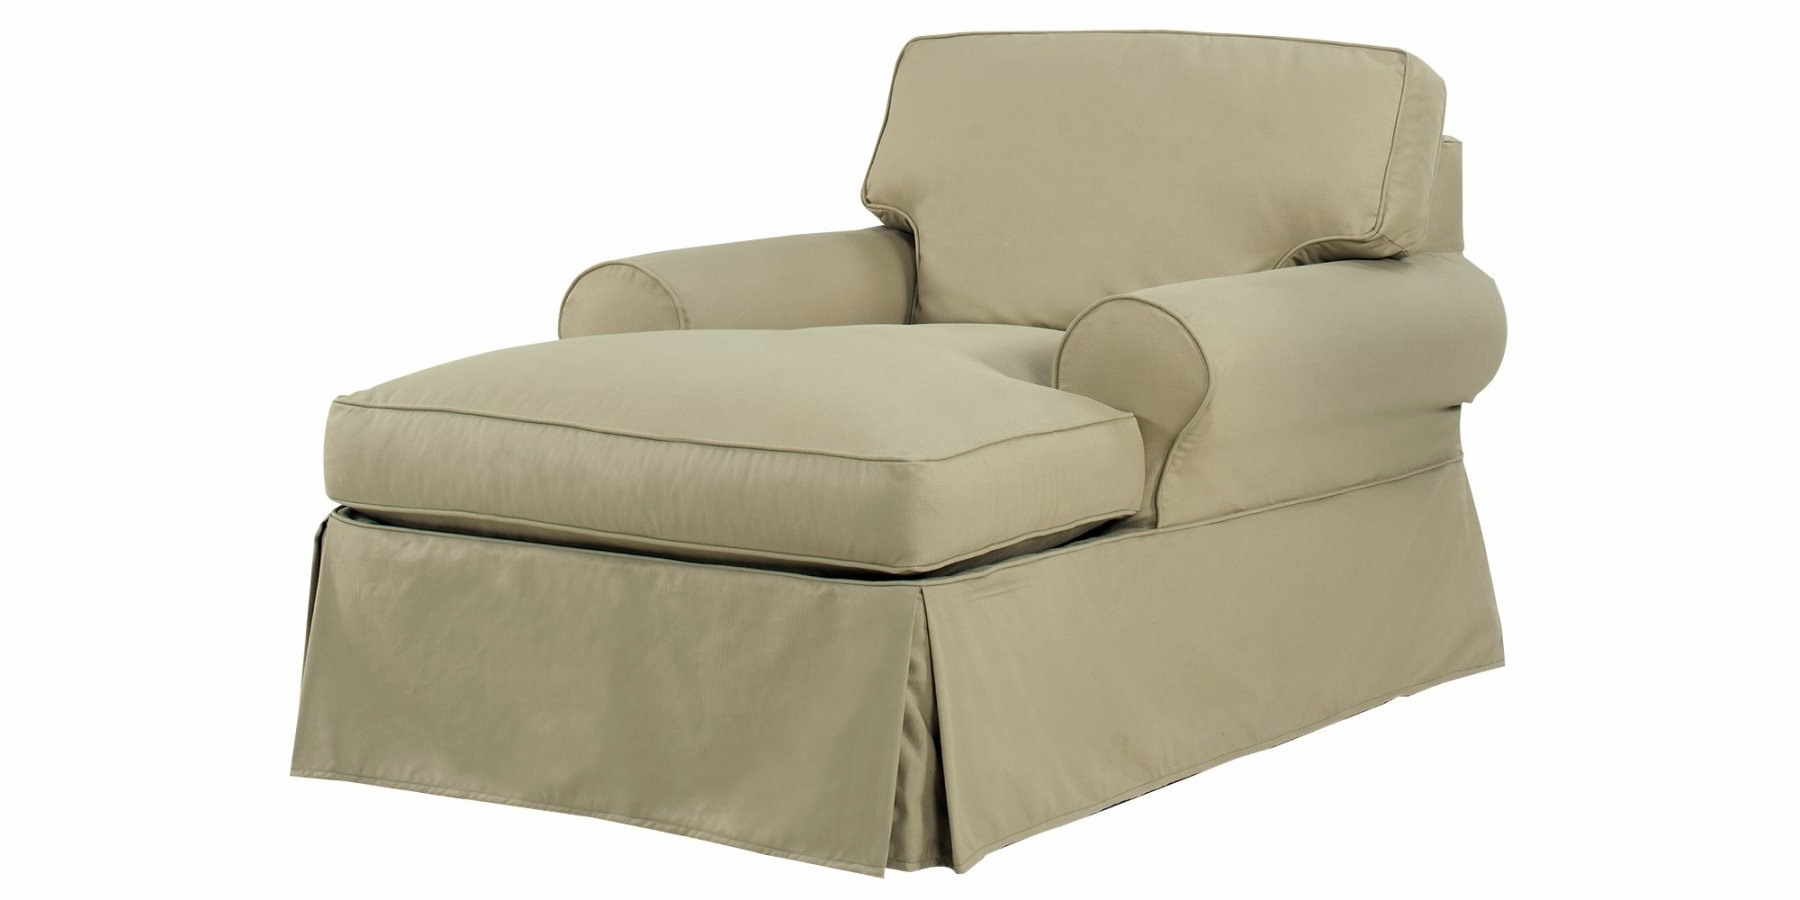 Chaise Lounge Chairs For Two For Fashionable Chaise Lounge Chairs Two Arms • Lounge Chairs Ideas (View 1 of 15)